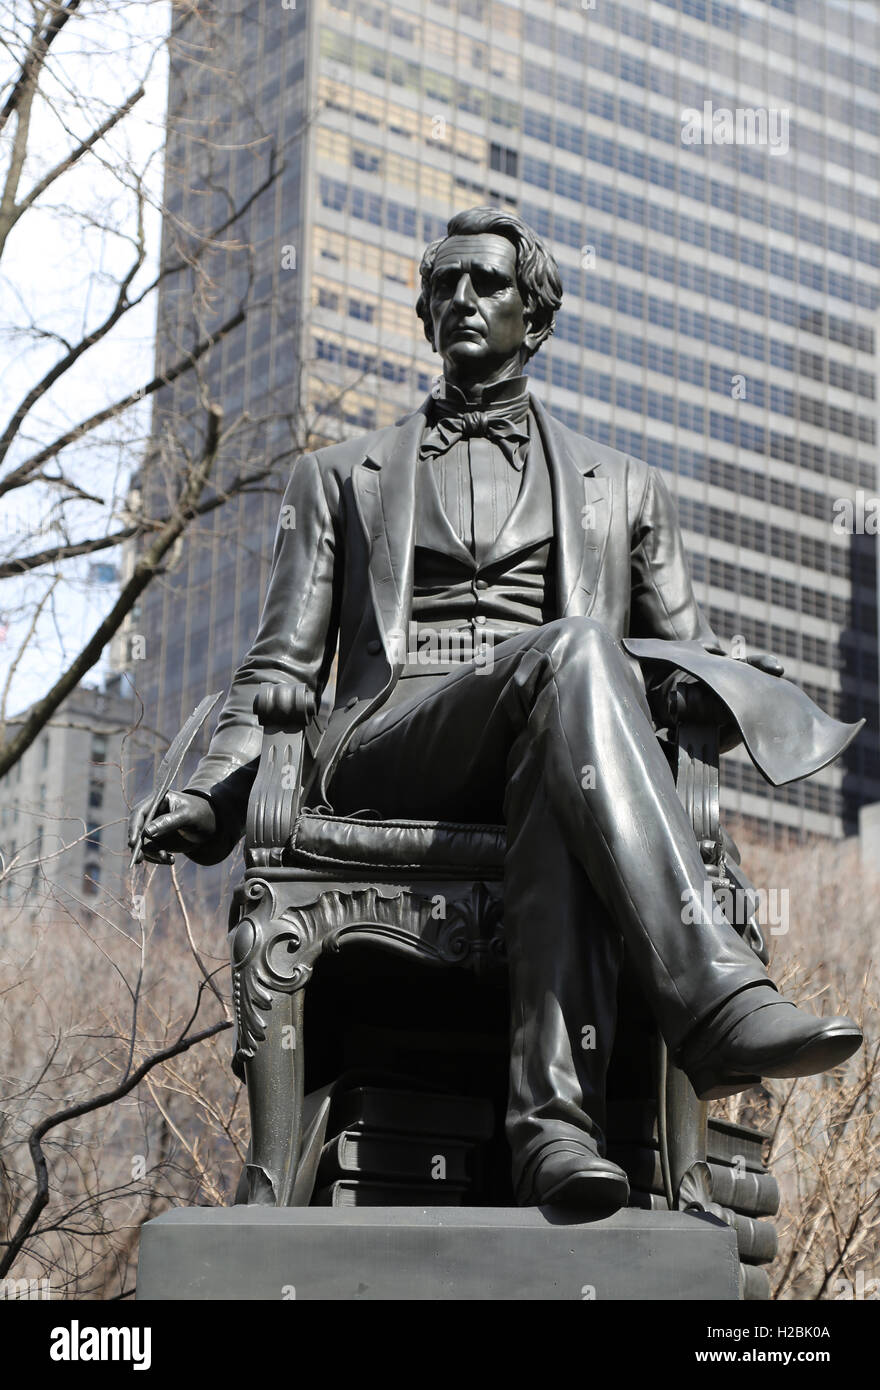 Statue of american statesman William Henry Seward (1801-1872) by Randolph Rogers (1825-1892). Madison Square Park. - Stock Image